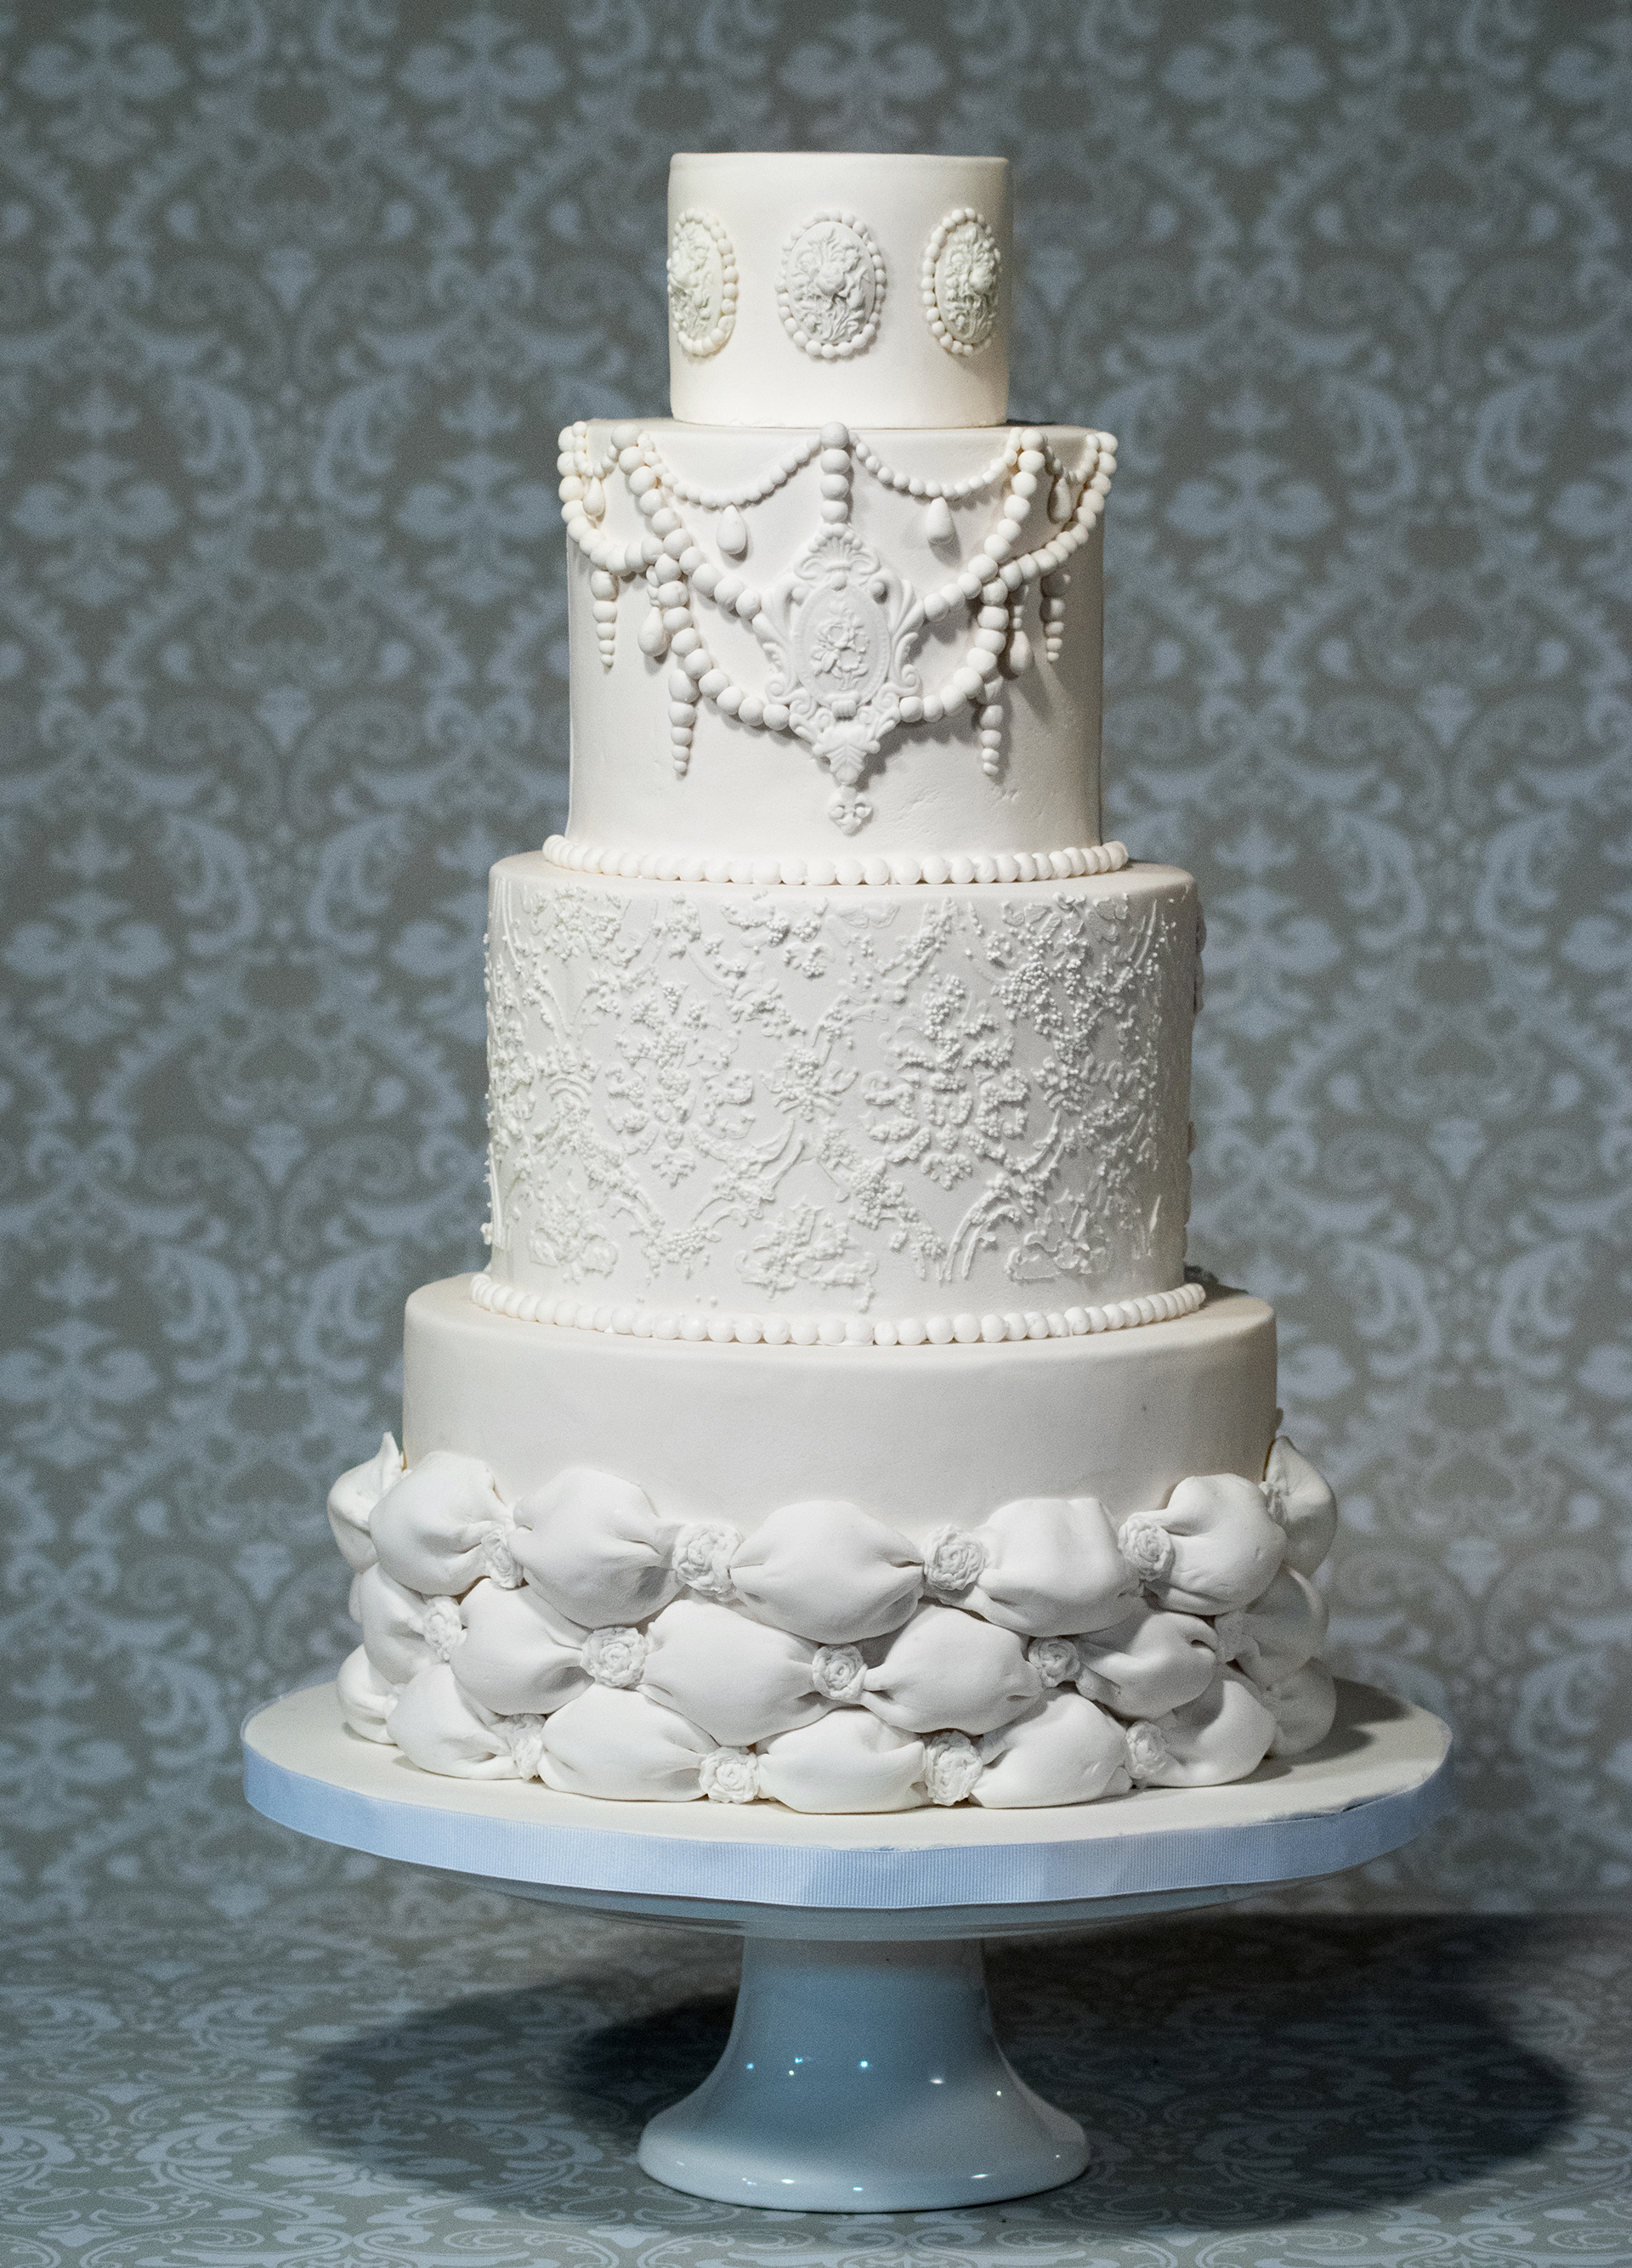 White wedding cake with pearls